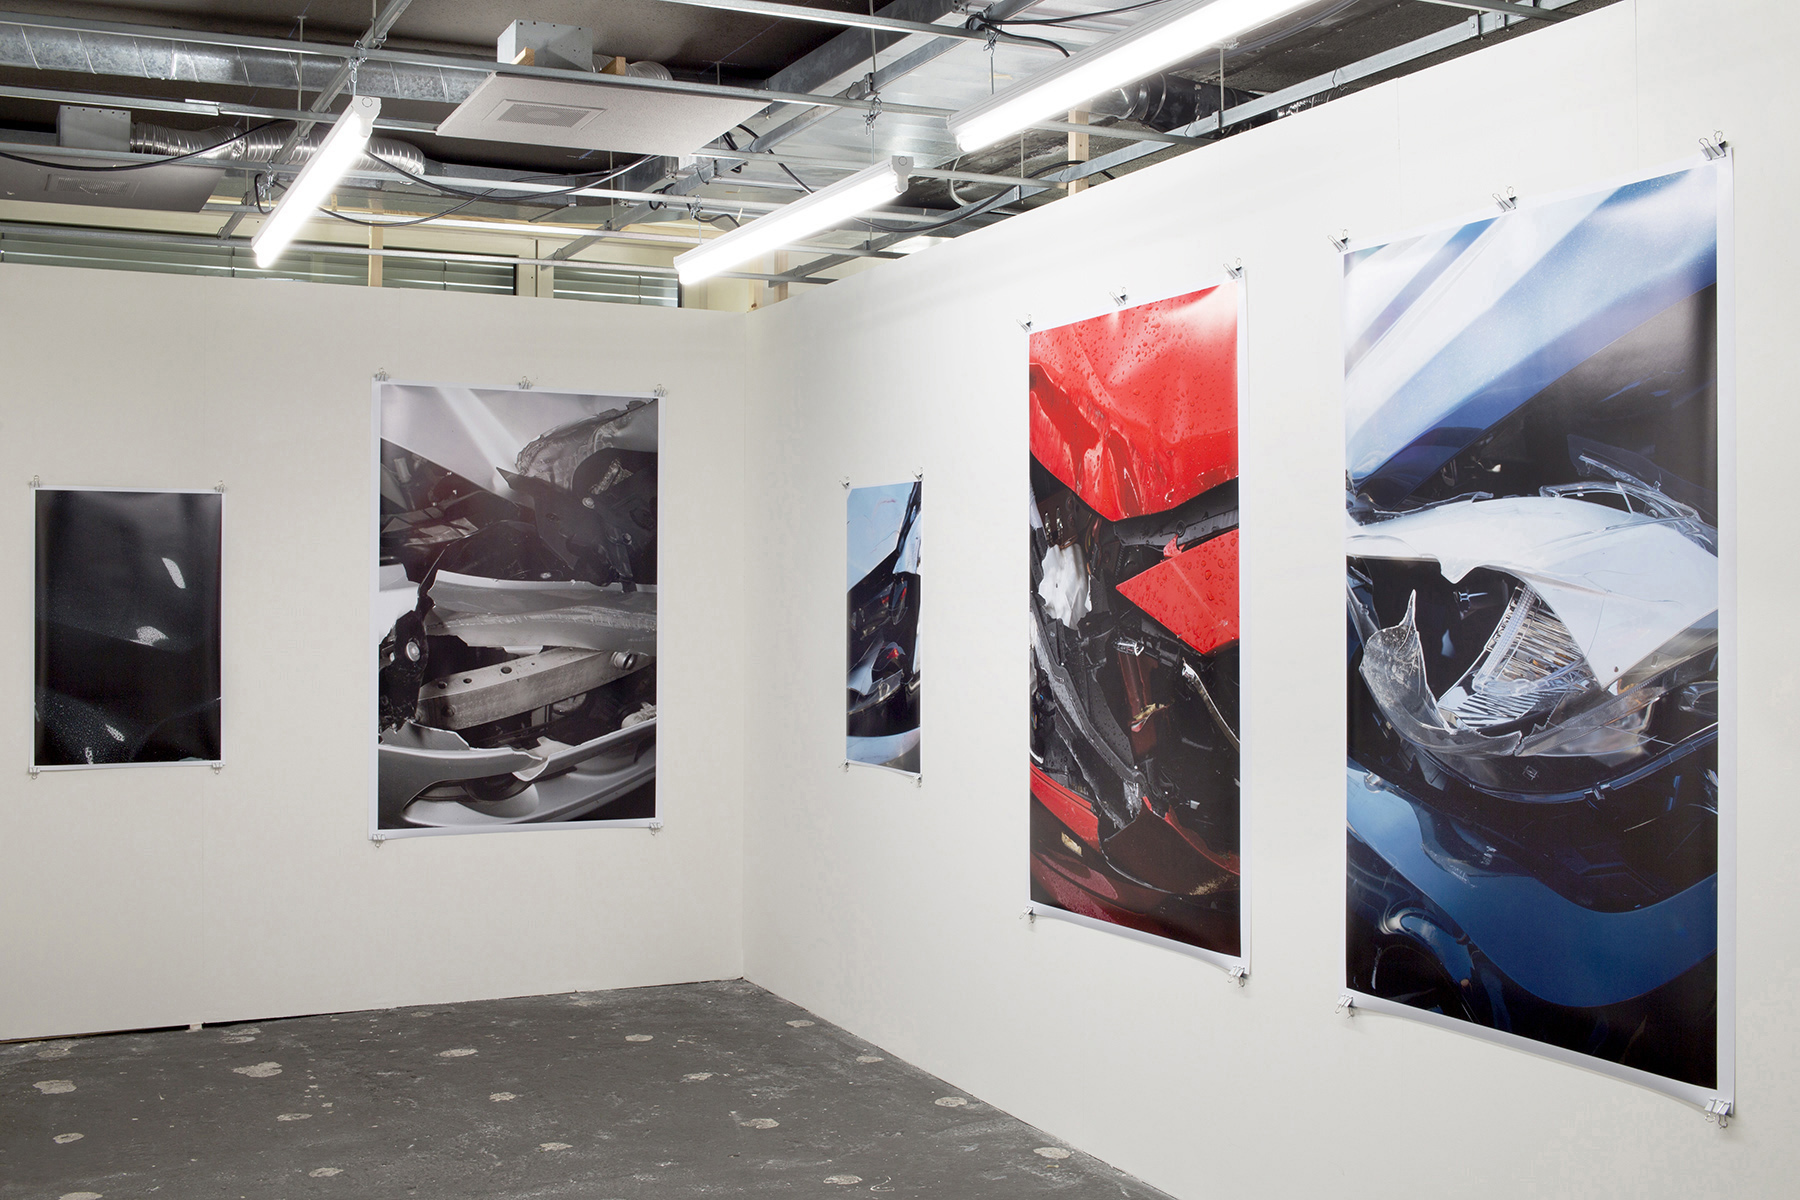 Chris Drange, Christoph David Drange, Shape Shifter, PHANTOM, PALLADIUM, SLATE II, MISANO,  KOBALT, Crash Installation view, Photo Bastei, exhibition